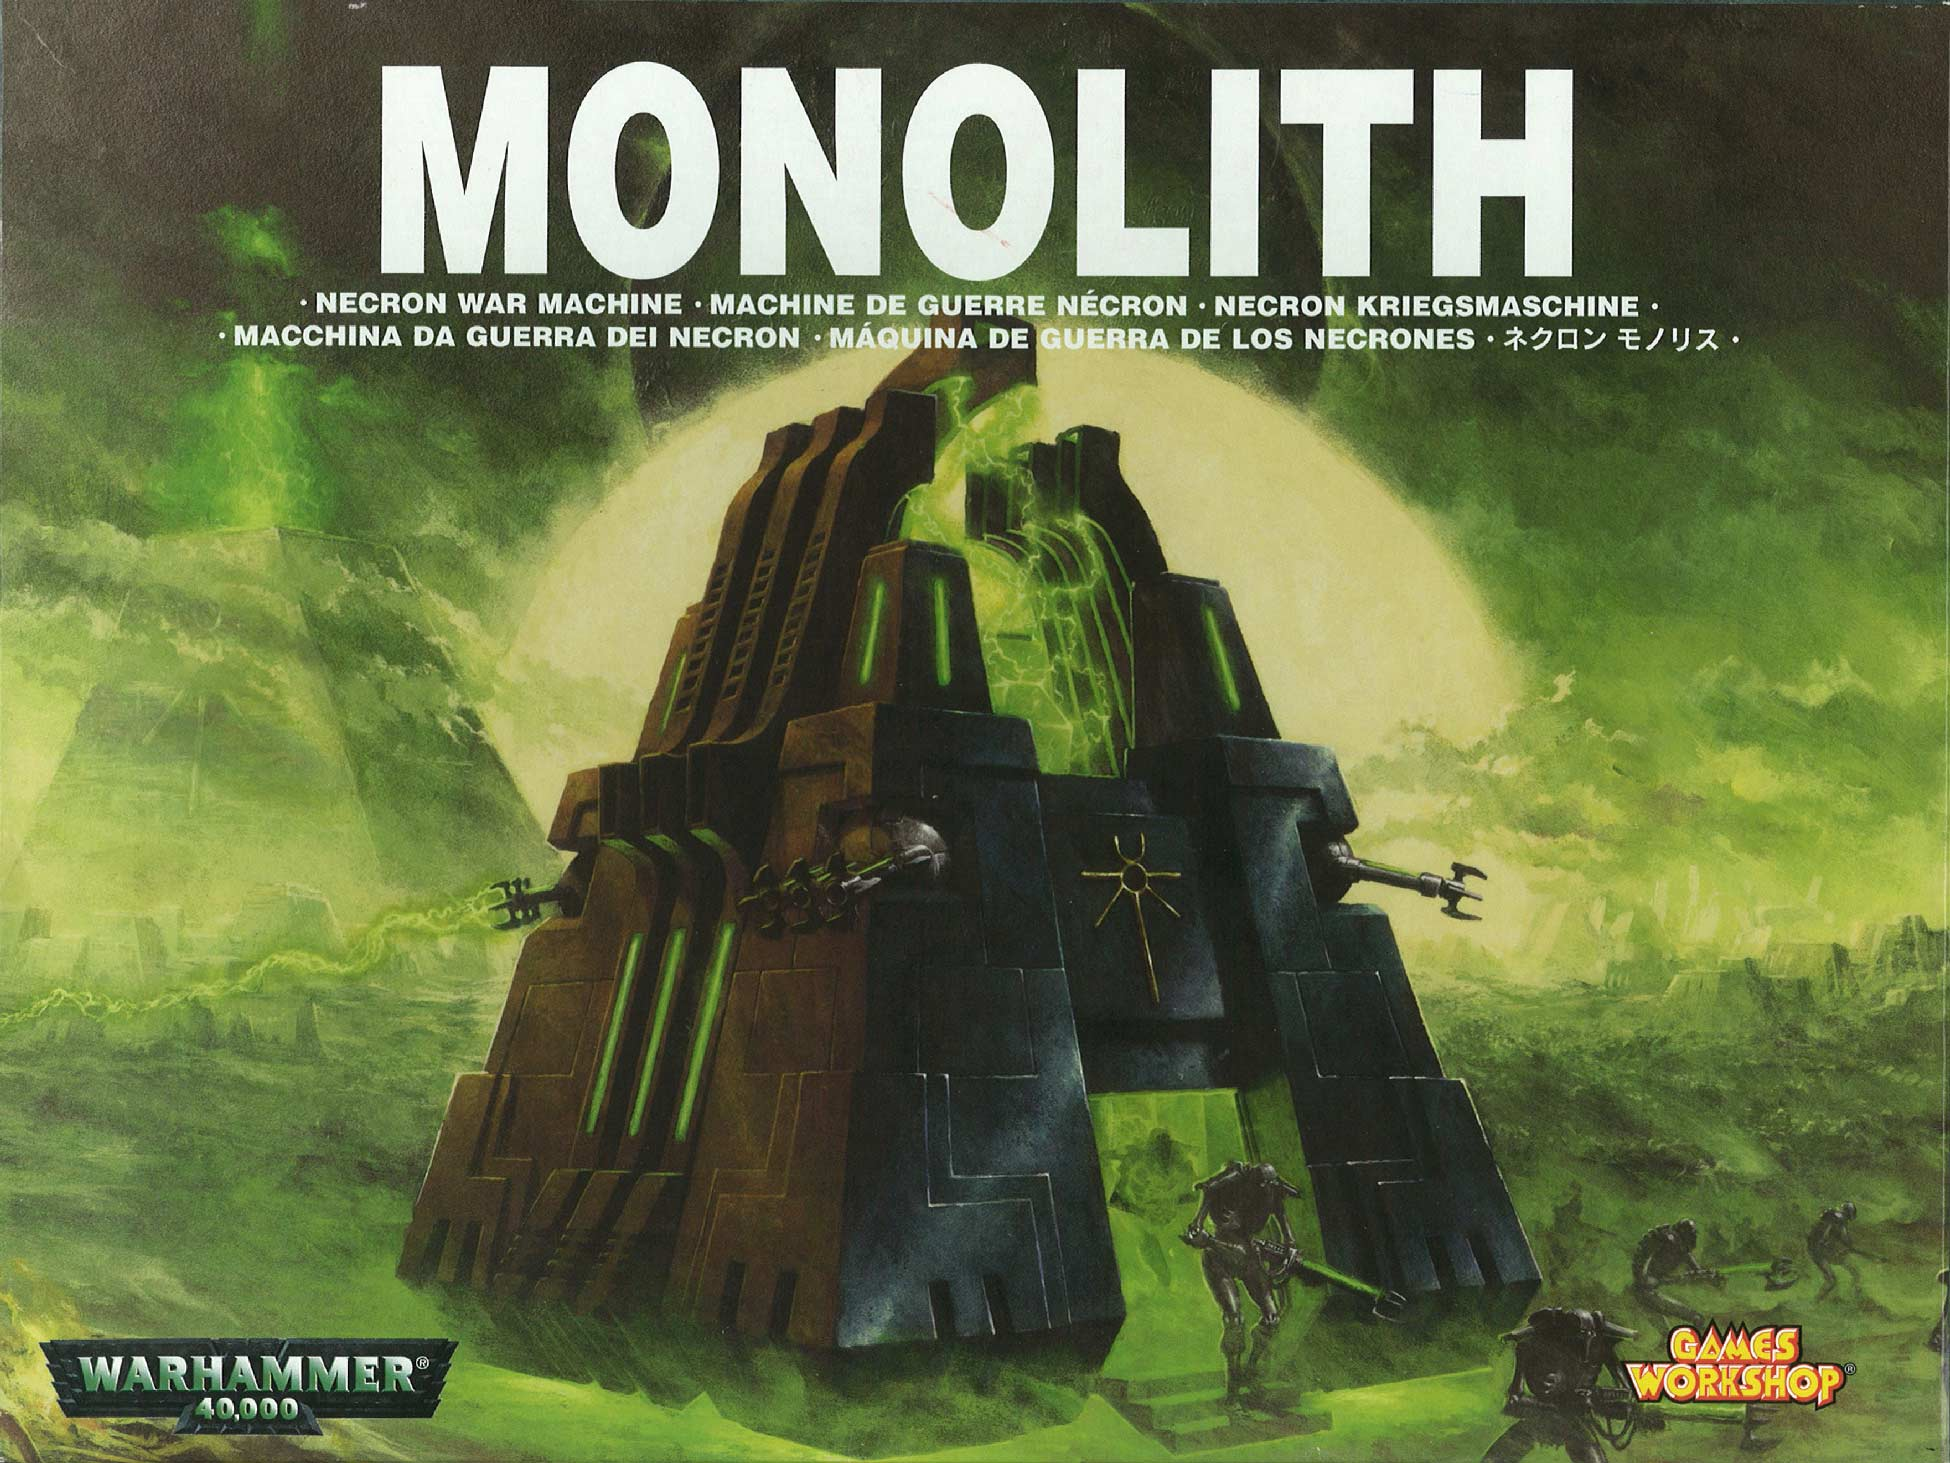 Face du packaging du Monolithe Nécron (Warhammer 40.000)